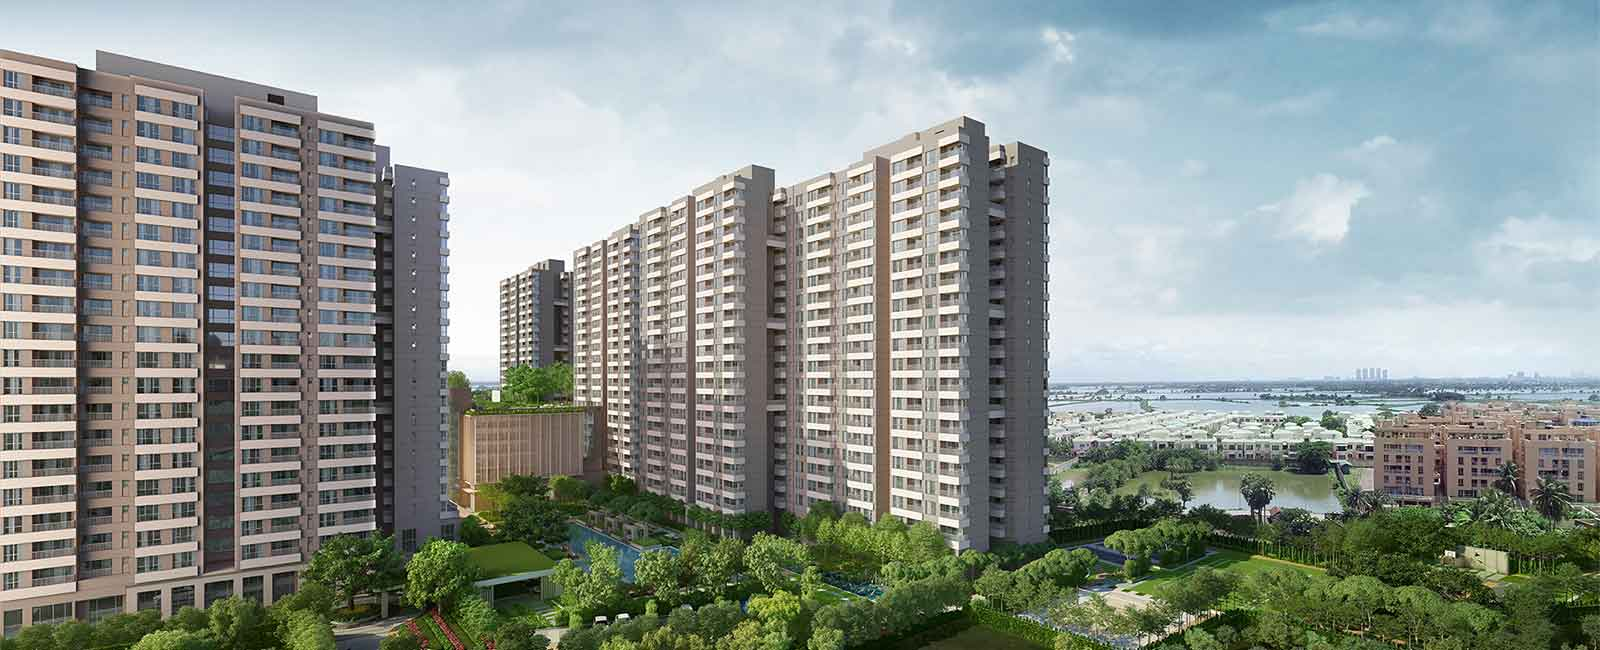 Real estate companies in Kolkata you can trust - PS Group